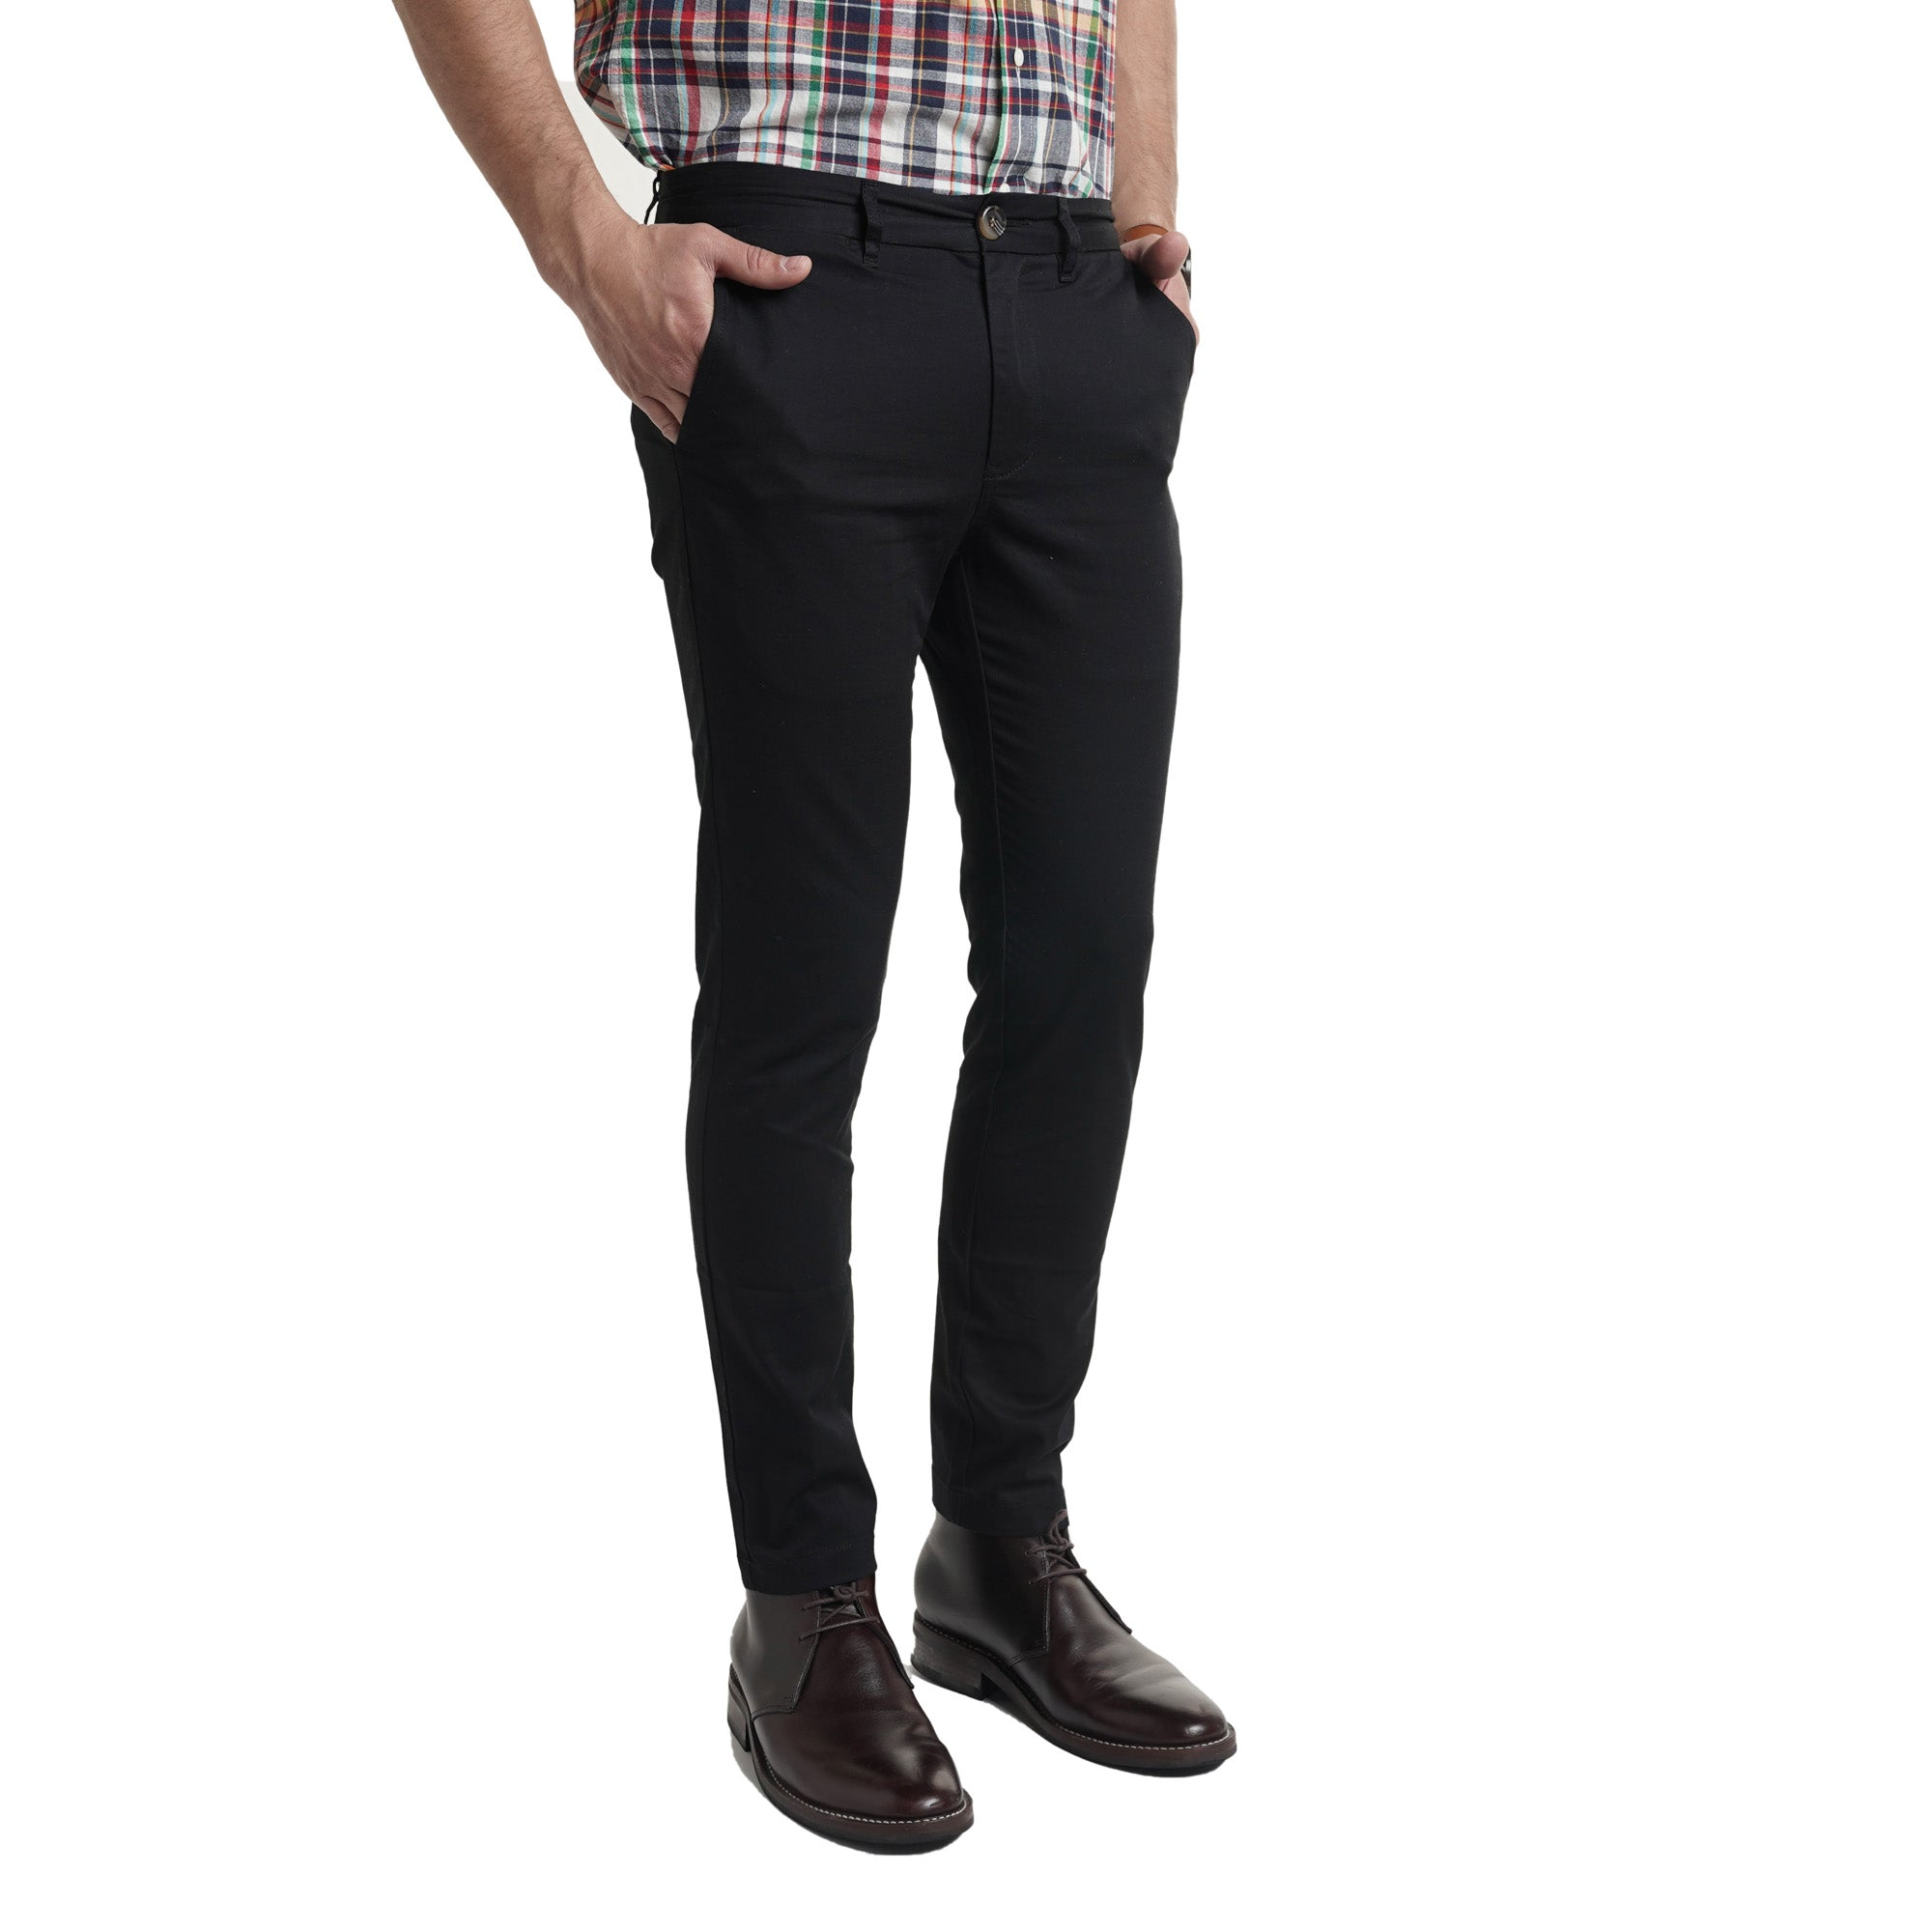 Lightweight Stretch Chinos - Black